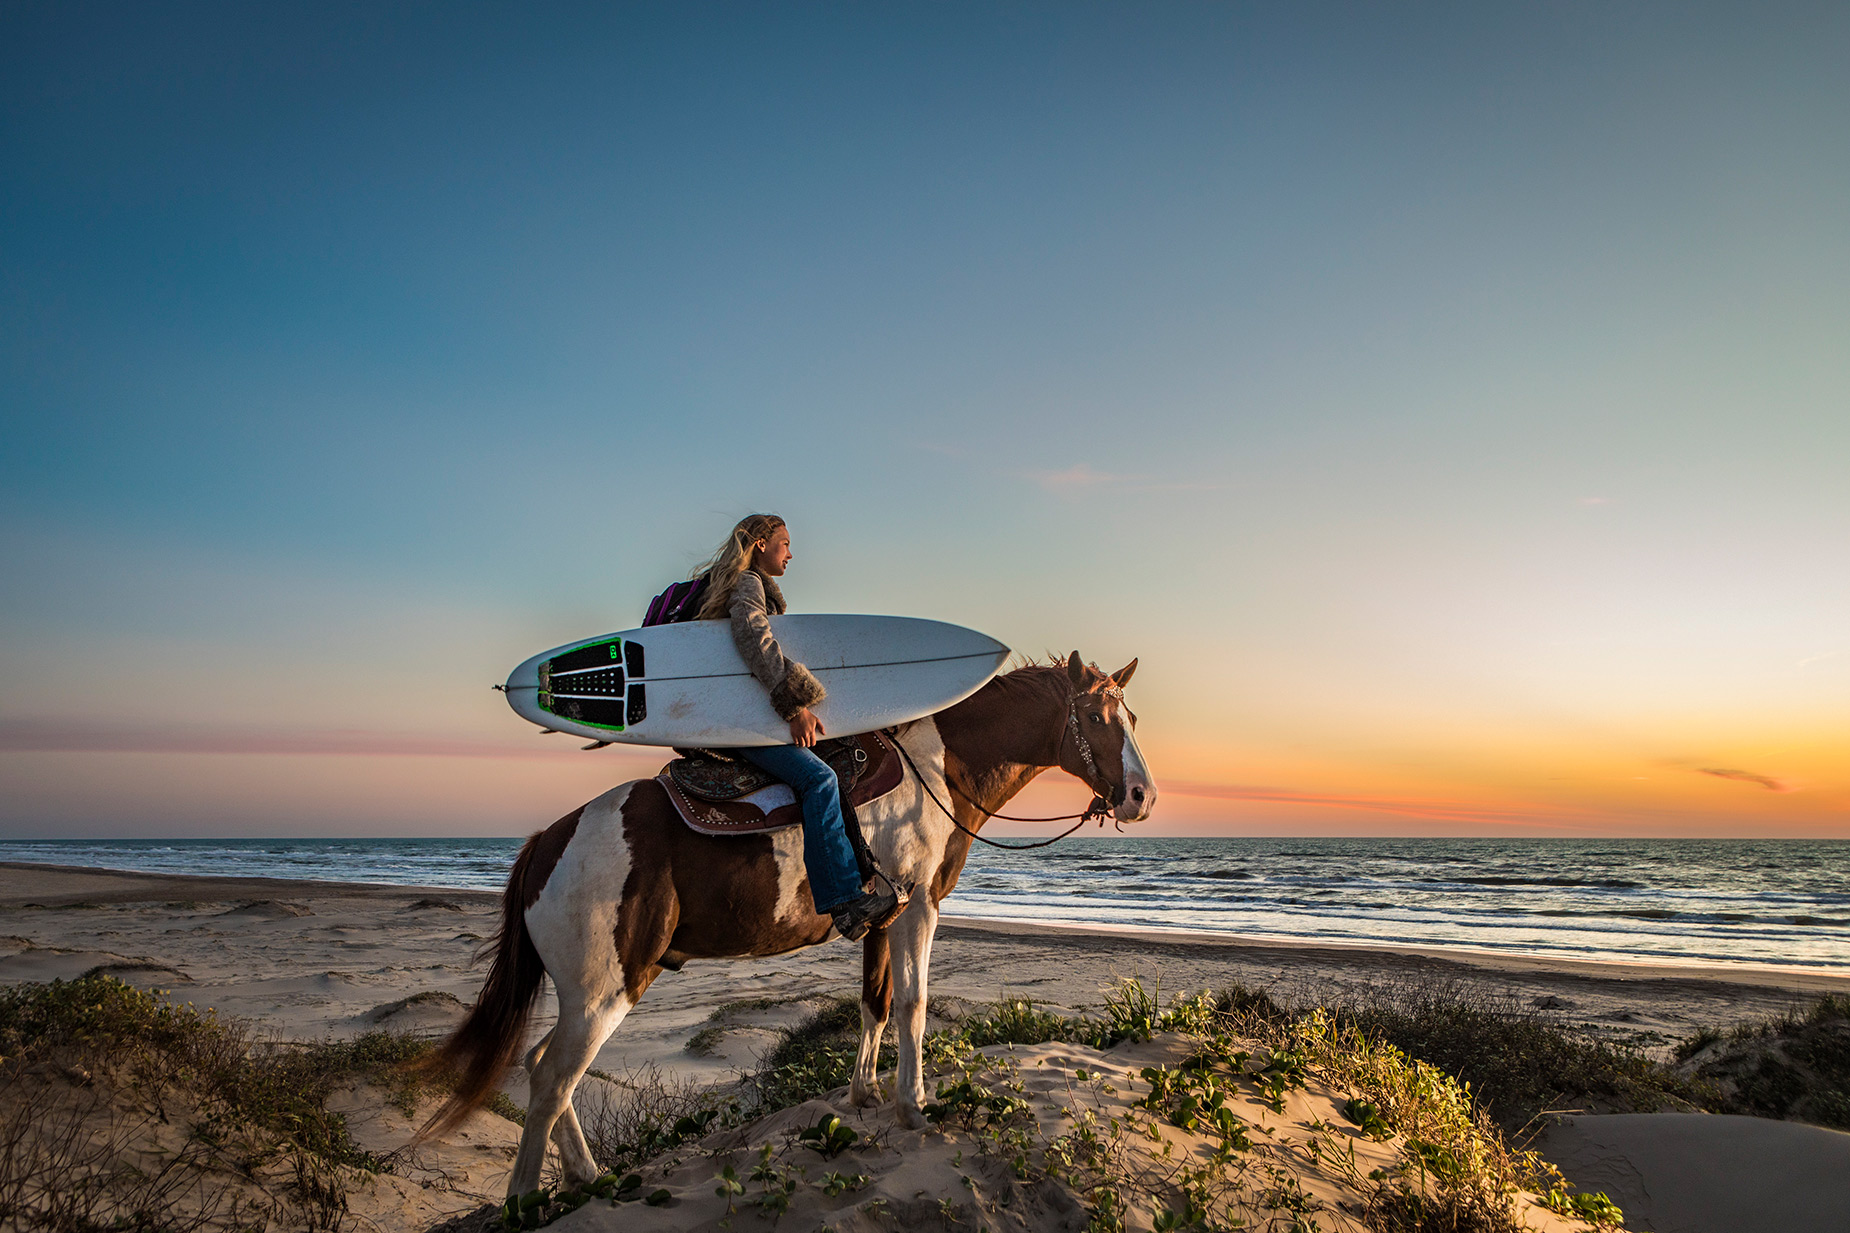 Texas surfer on her horse in the dunes at sunrise